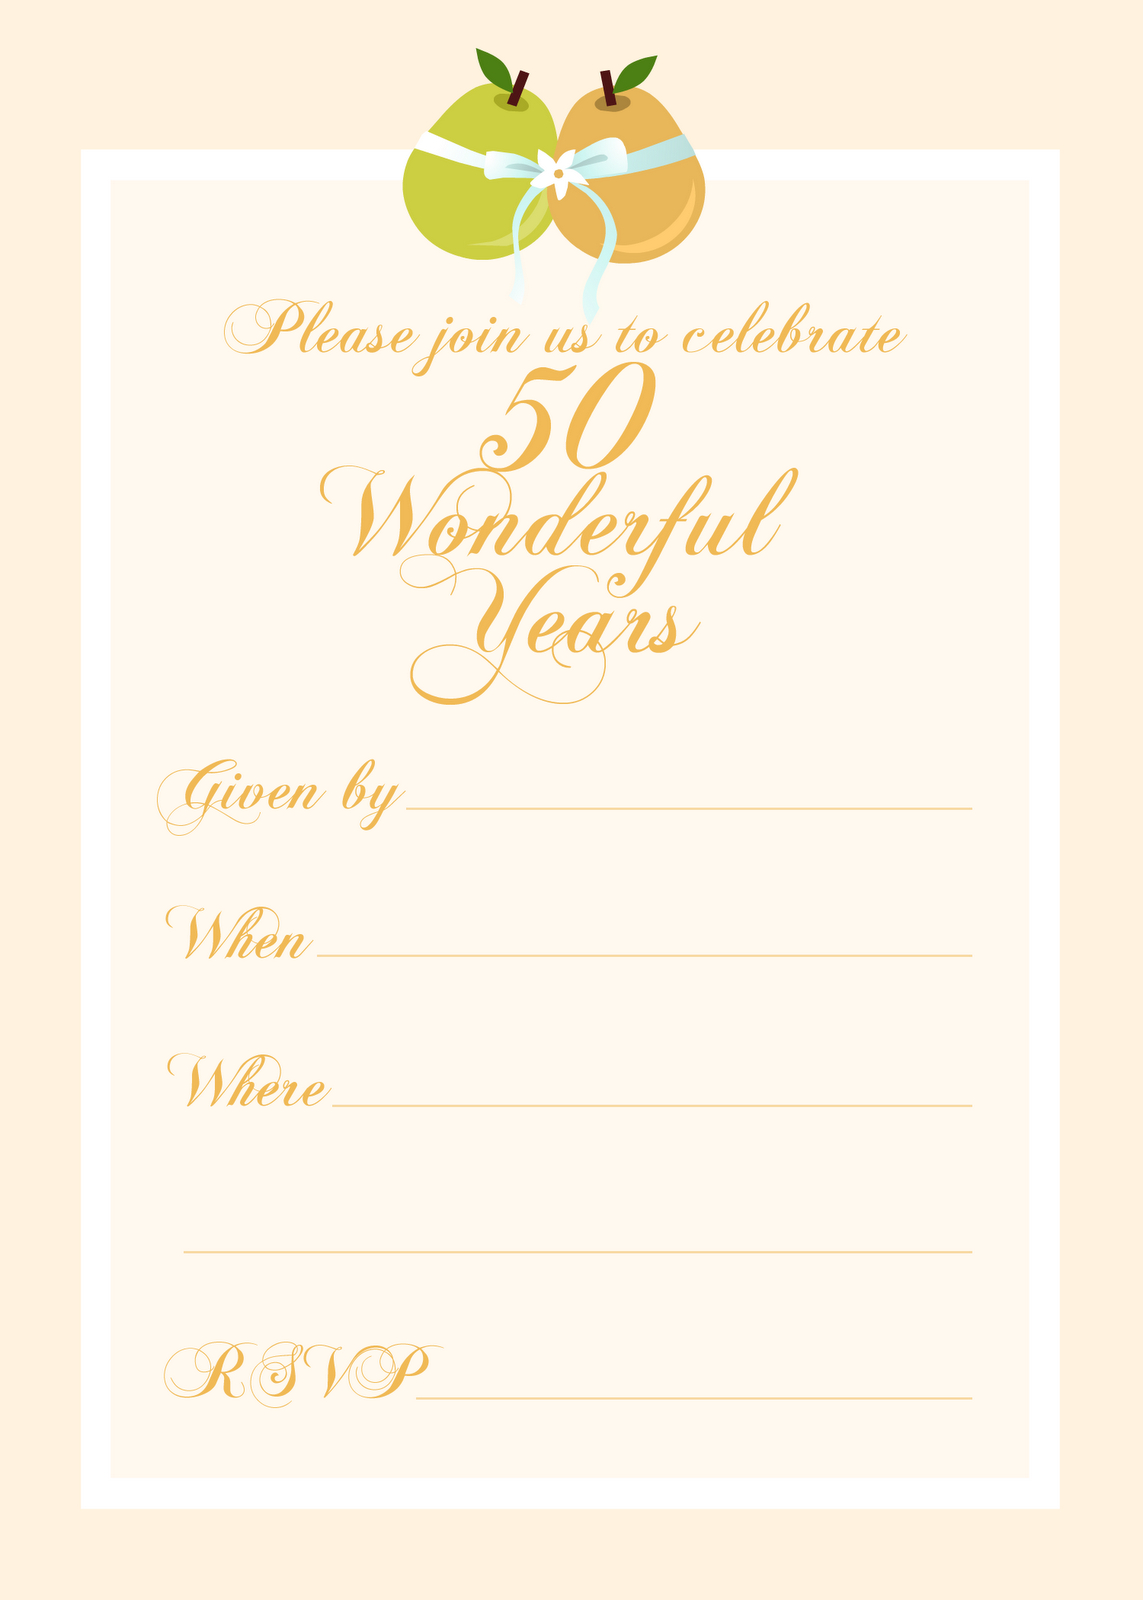 Free Printable 50 Year Anniversary Party Invitation | Free Printable - Free Printable 50Th Wedding Anniversary Invitation Templates